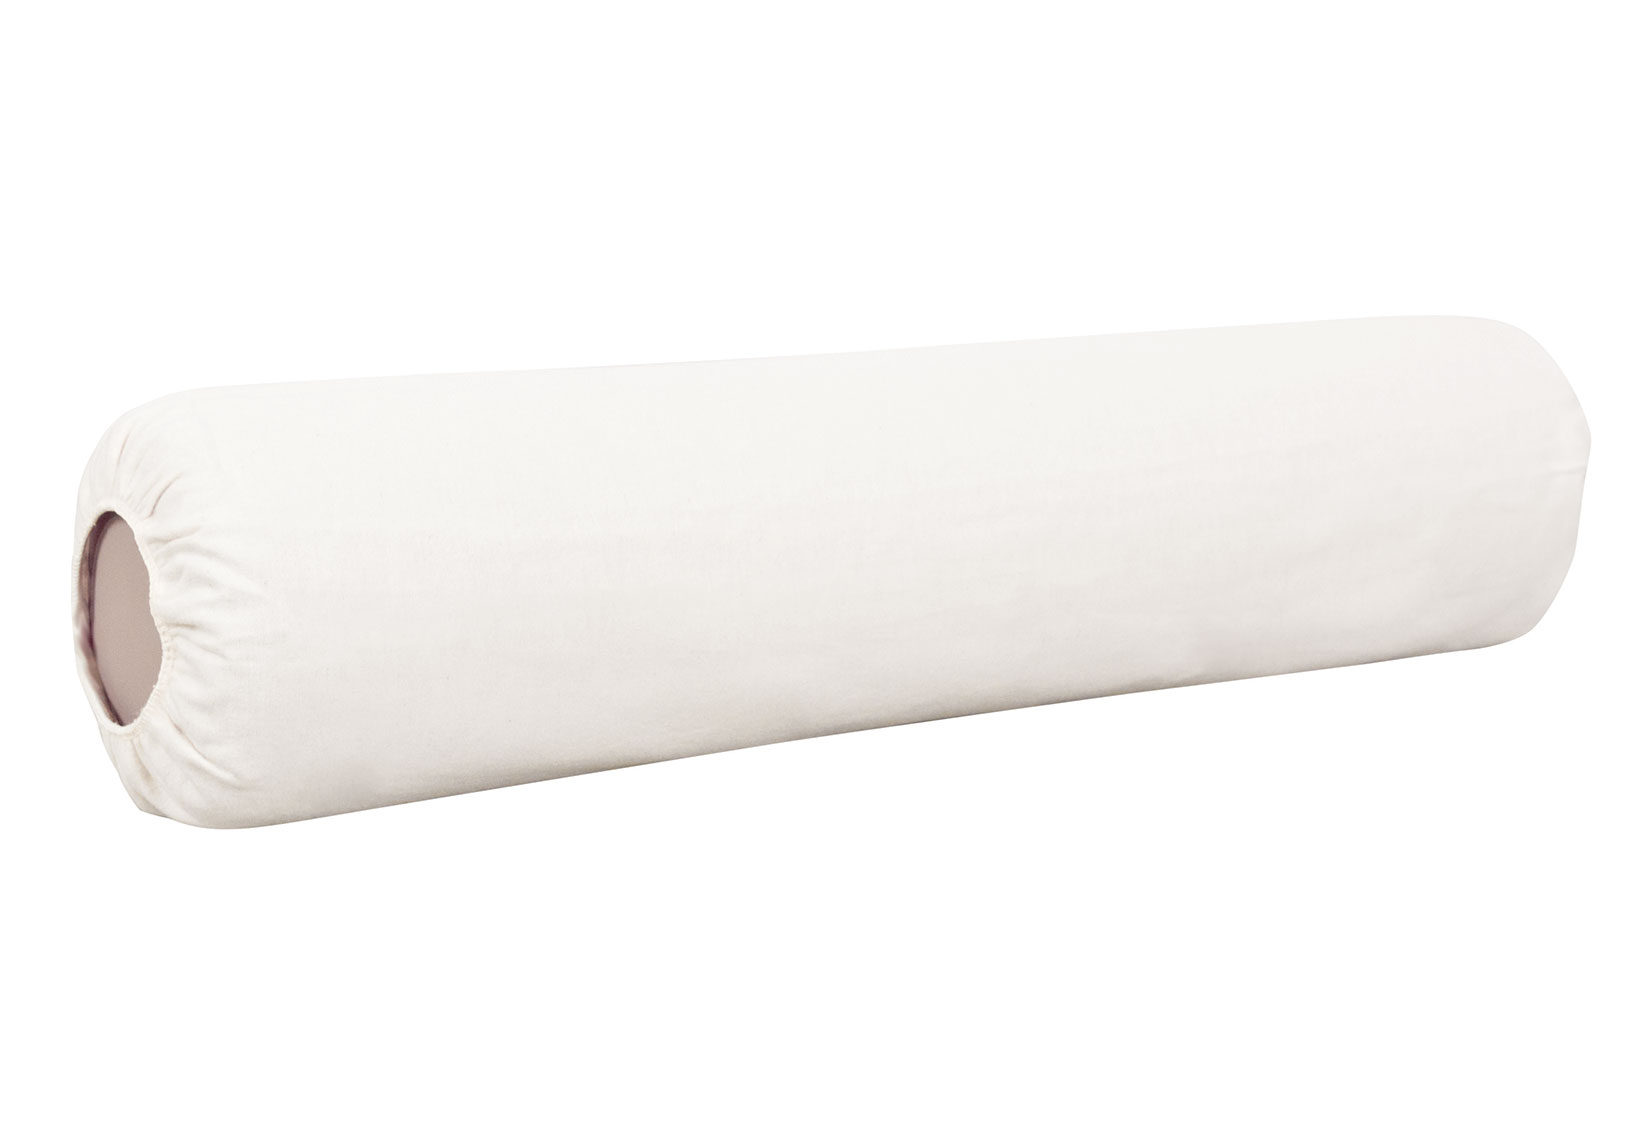 "Bolster Cover 150mm x 660mm (6"" x 26"")"